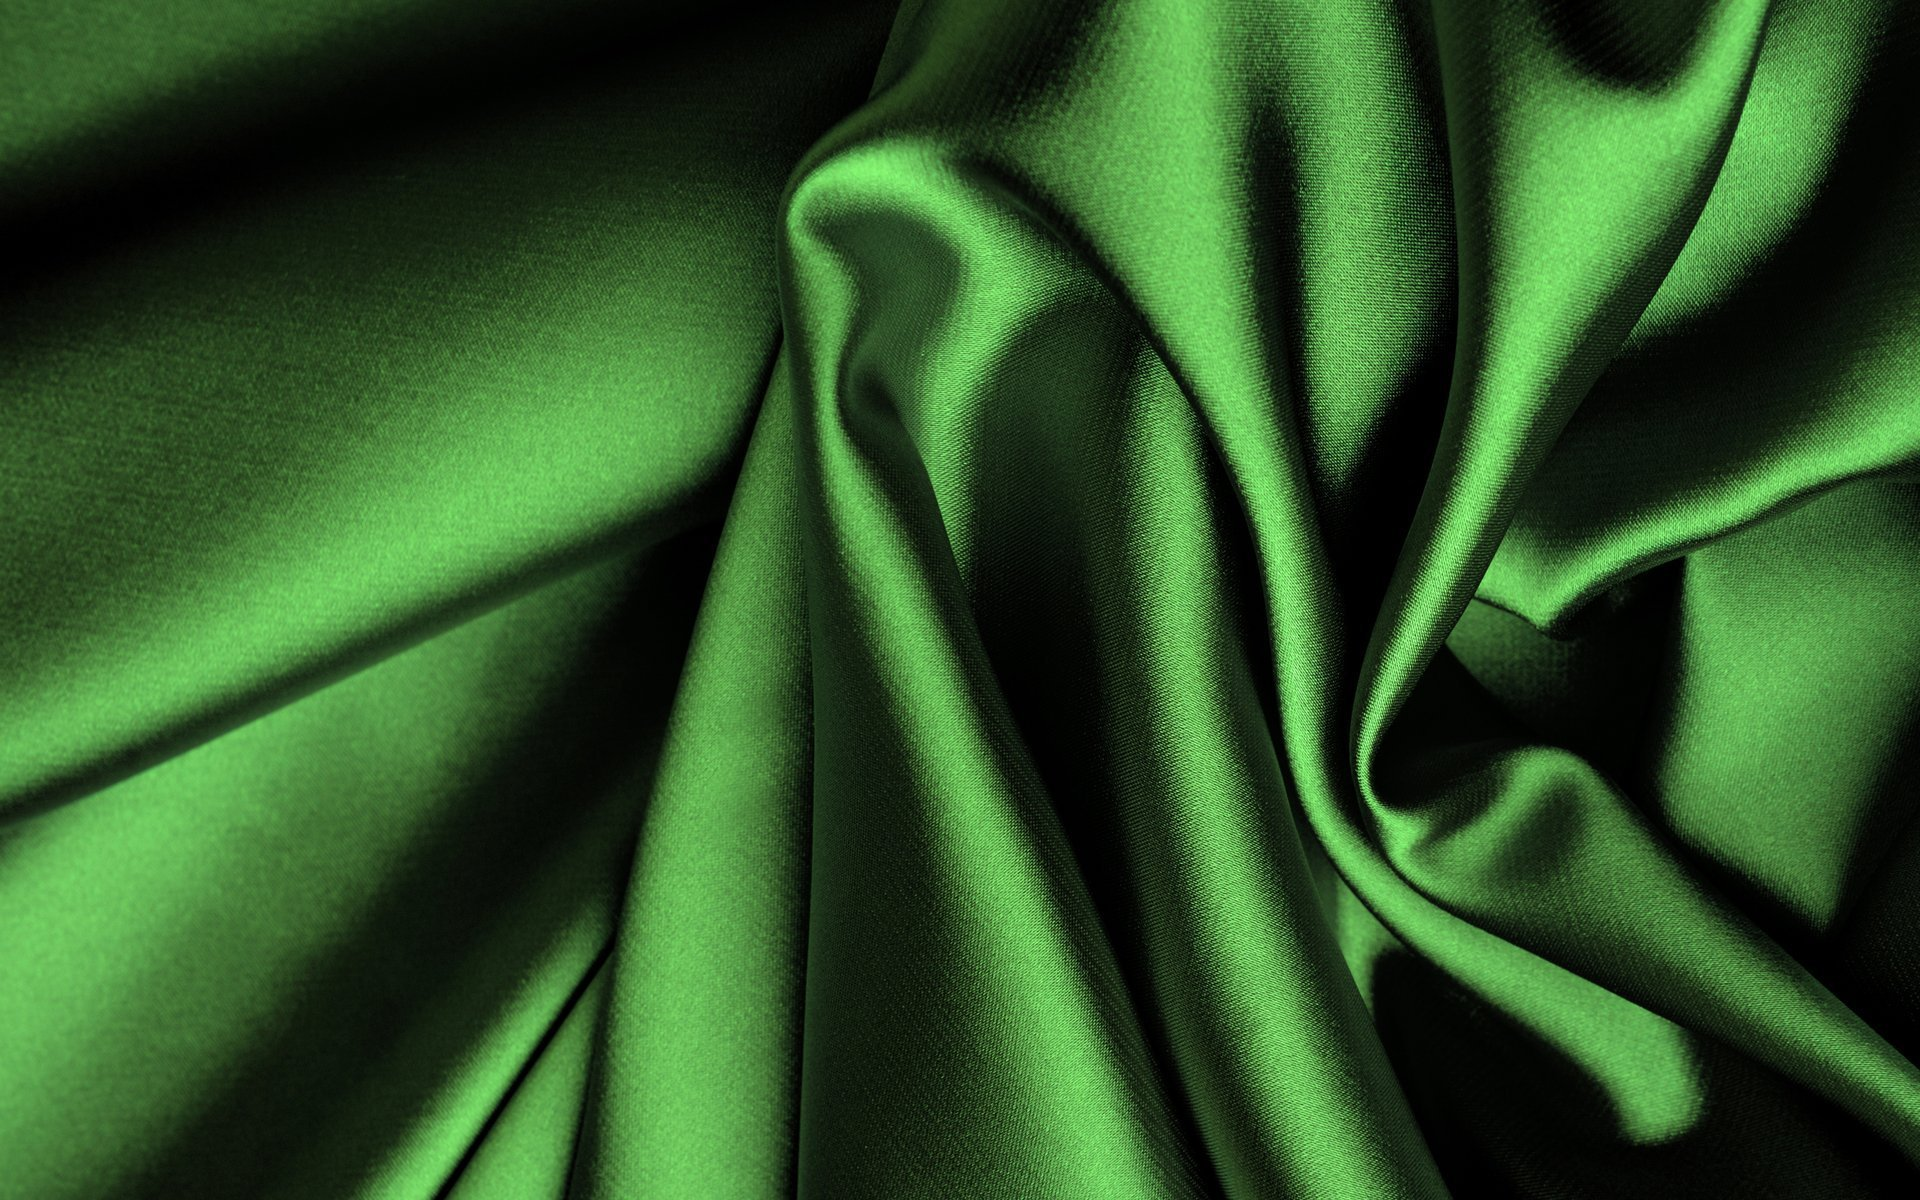 Green Silk Wallpaper